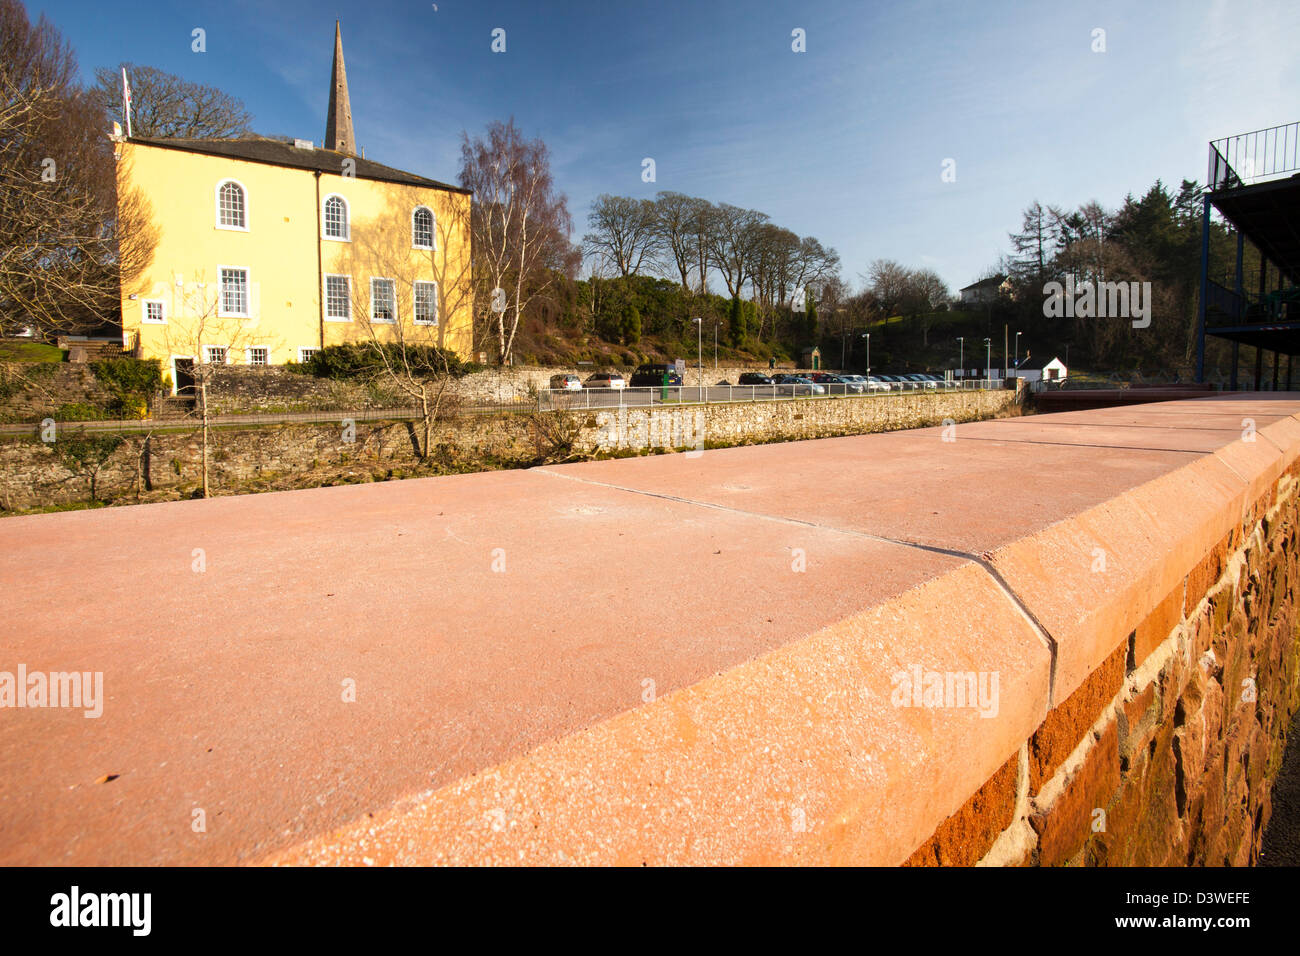 The new flood defences on the River Cocker in Cockermouth, Cumbria, UK, built after the disastrous November 2009 - Stock Image